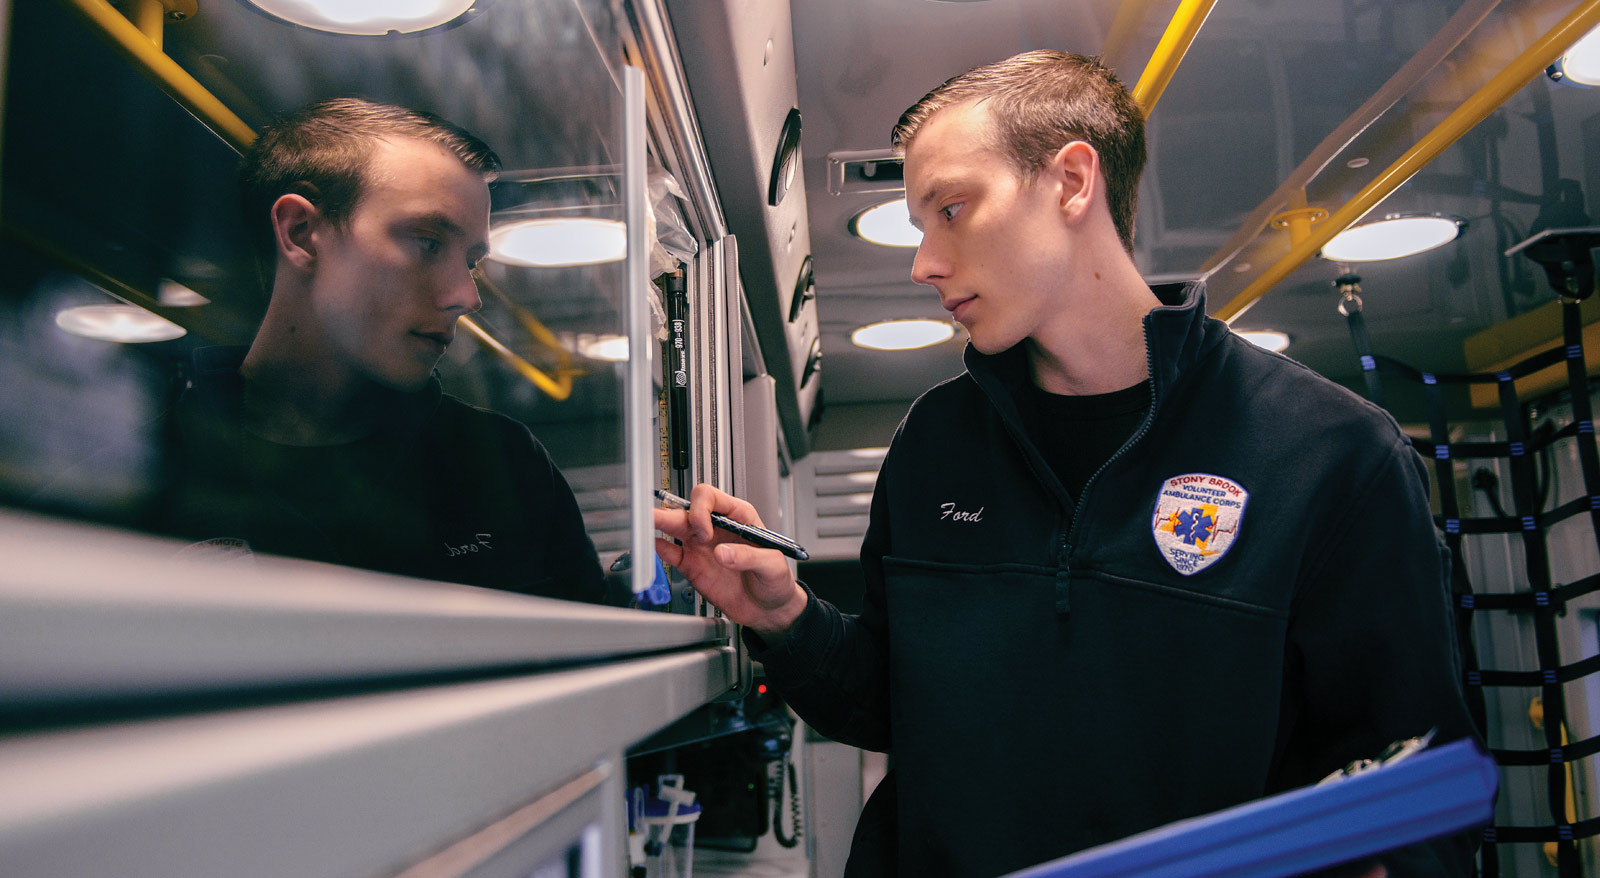 En route to achieving his dream of working in medicine, Shane Ford '17 volunteers with the University's Ambulance Corps.